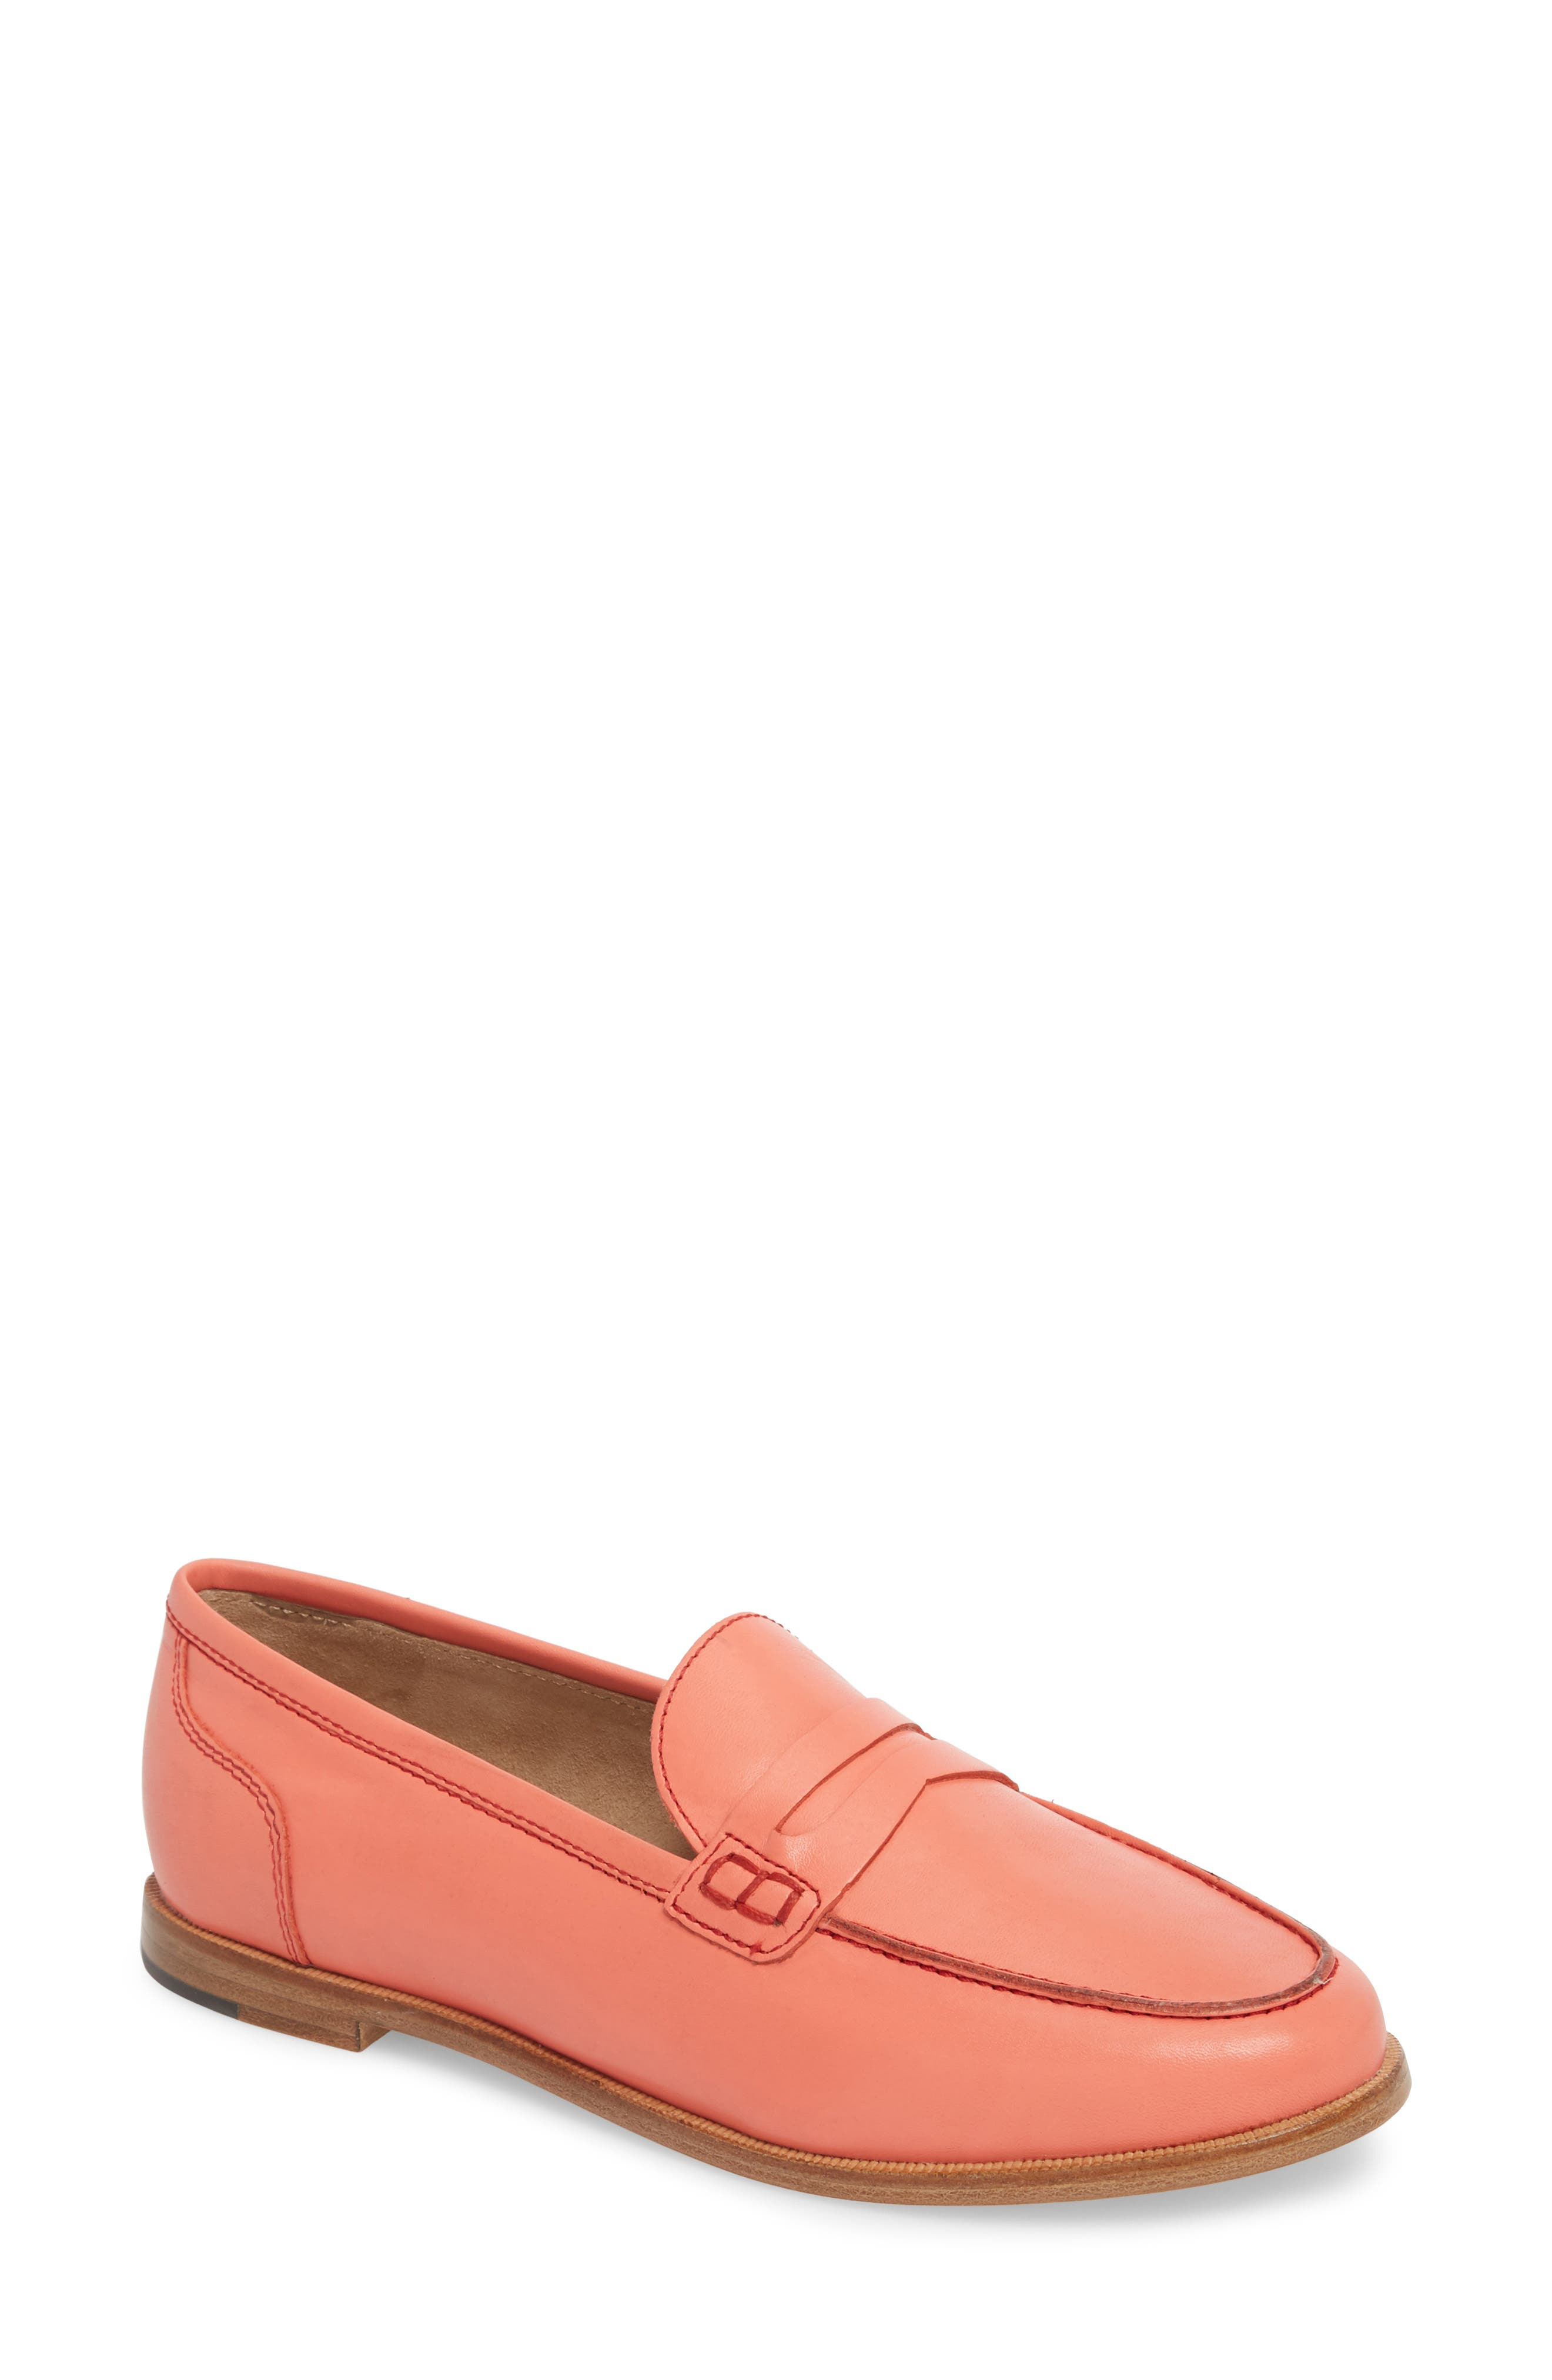 Ryan Penny Loafer,                         Main,                         color, RUST LEATHER